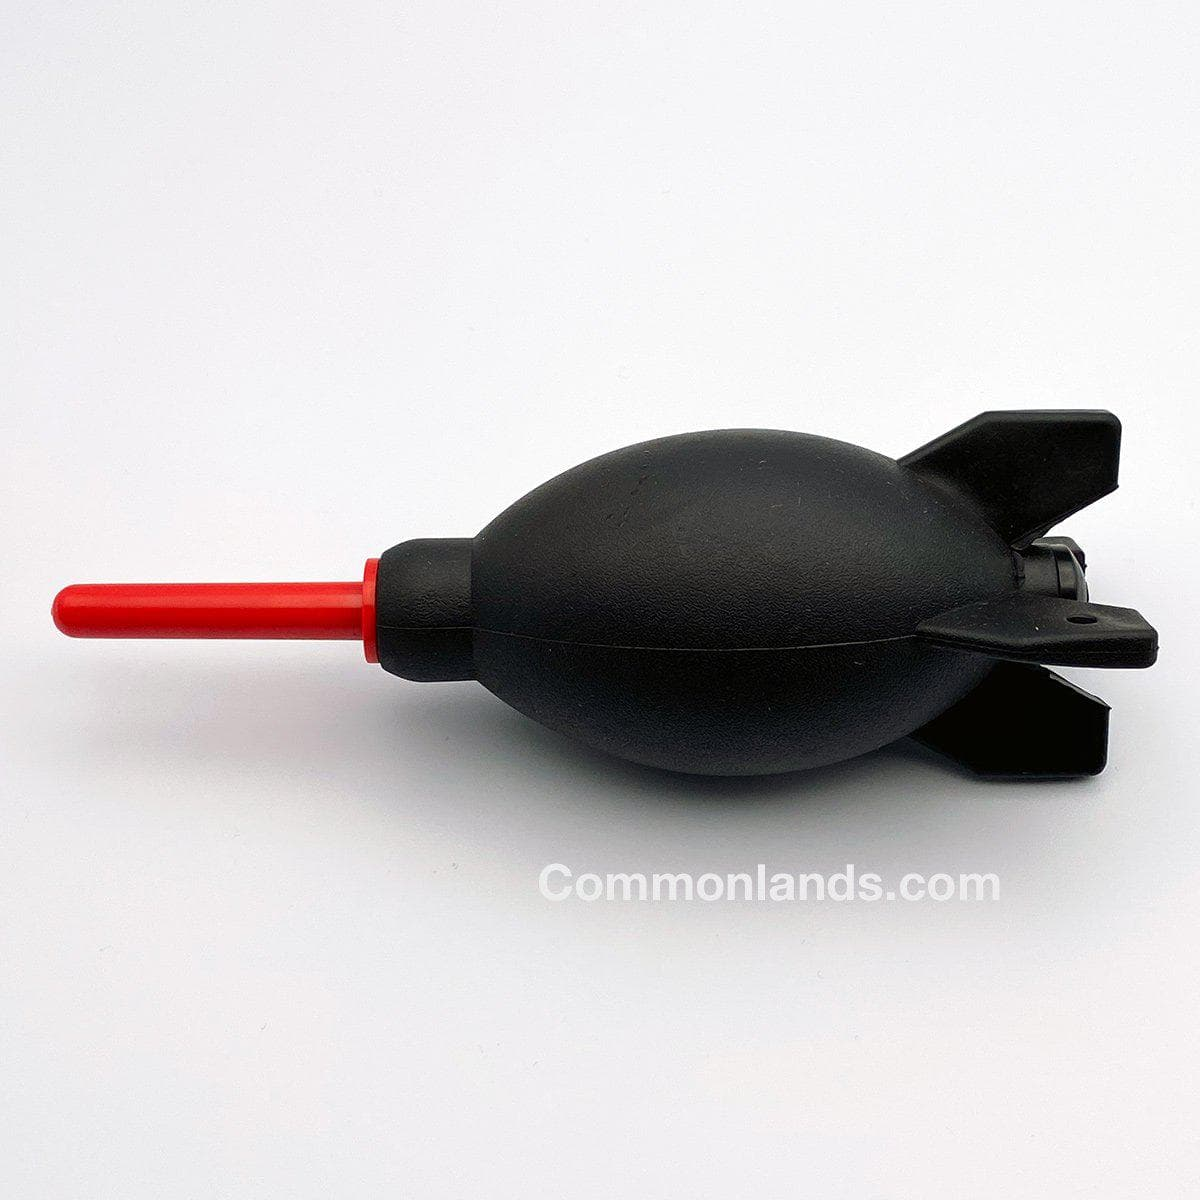 Camera Lens Rocket Air Blaster Dust-Removal Tool